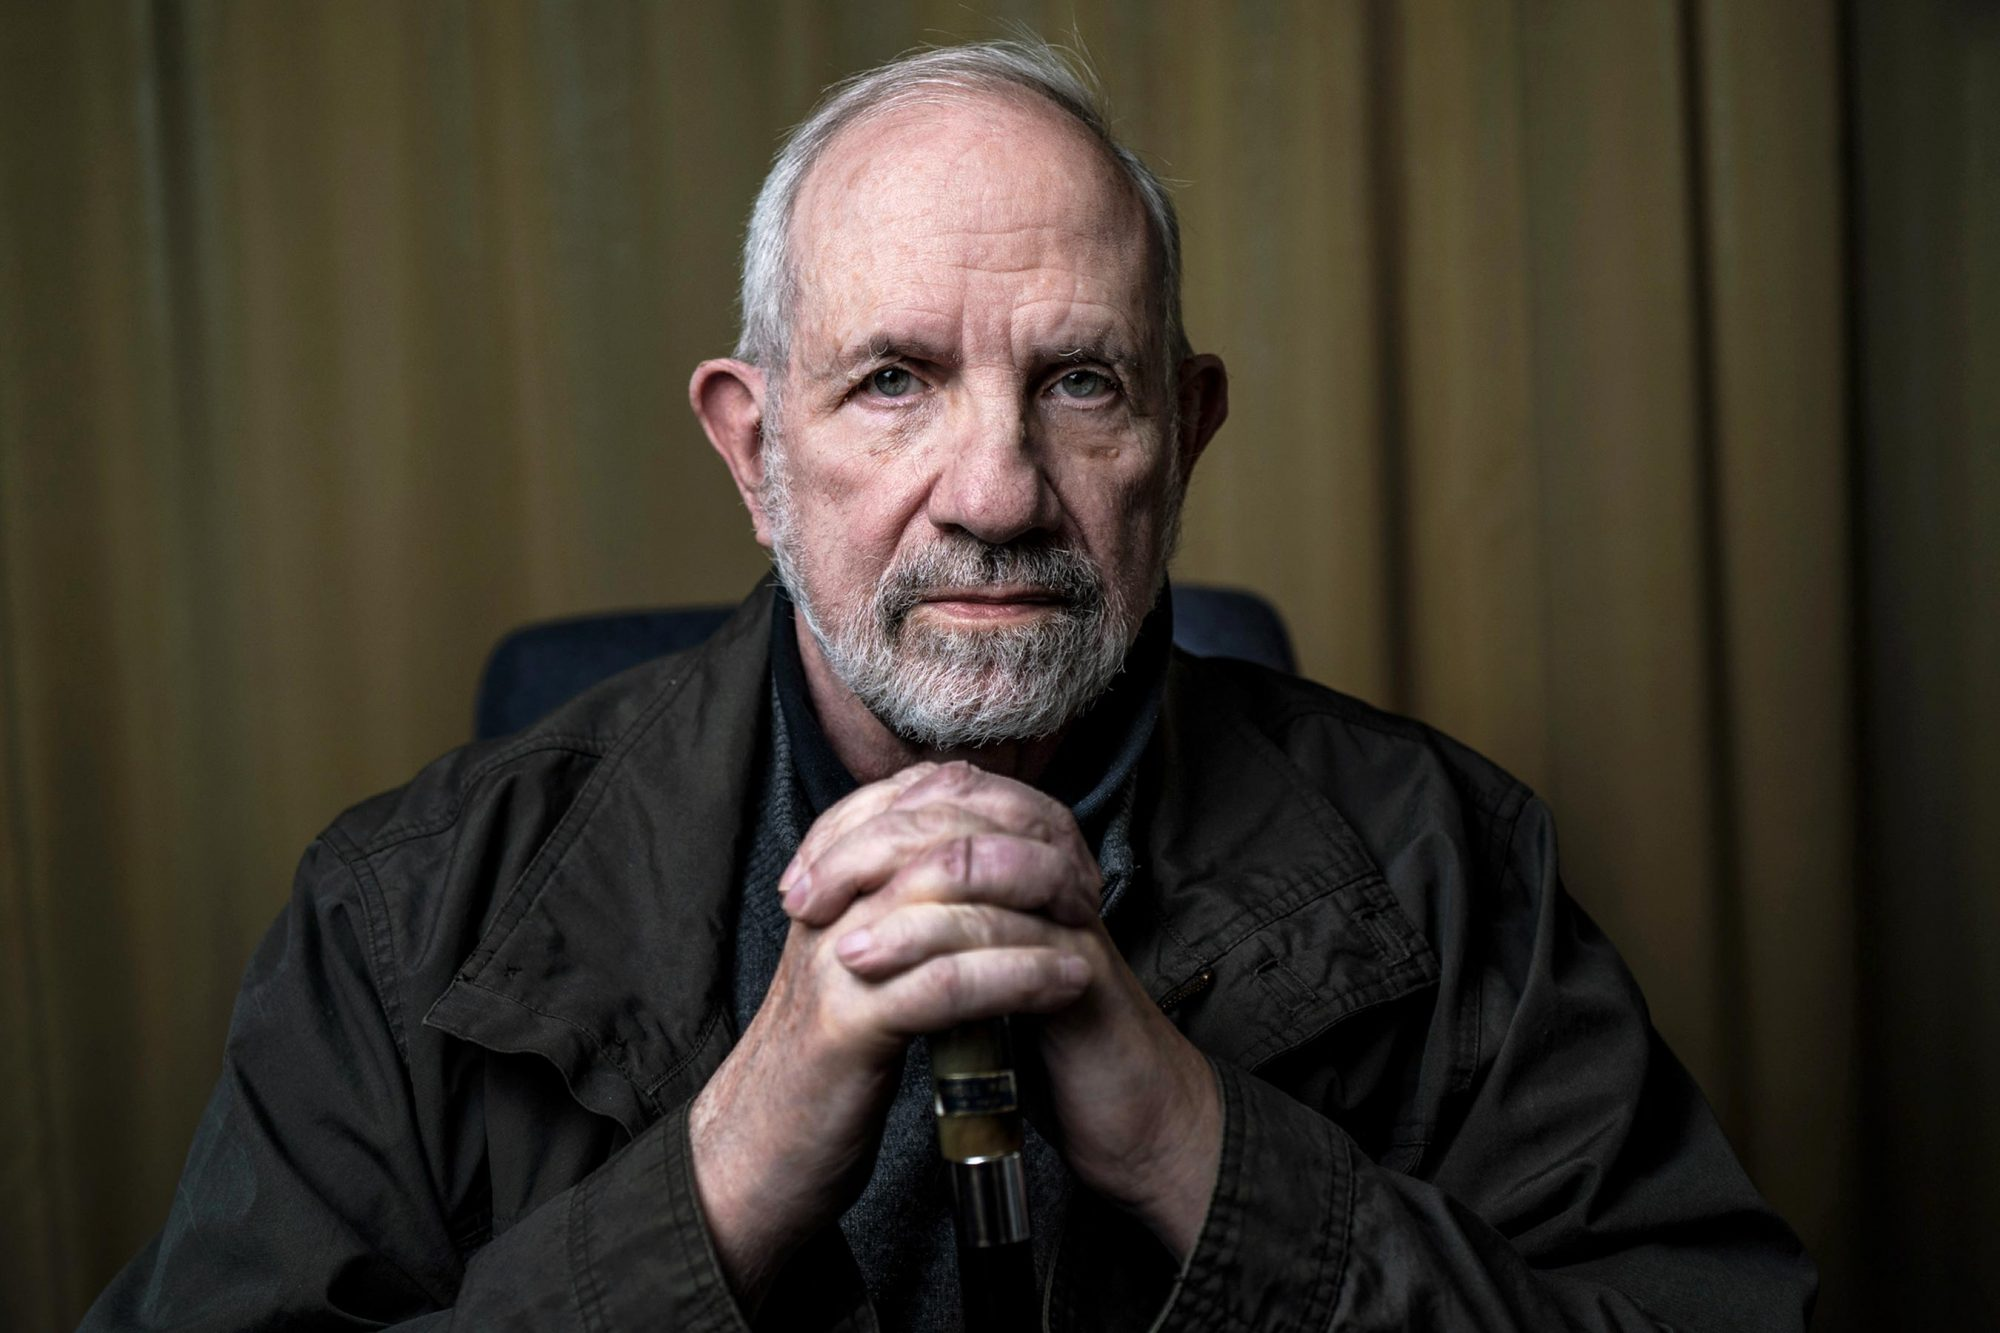 TOPSHOT - American film director, screenwriter and writer Brian De Palma poses on March 29, 2019 in Lyon. (Photo by JEFF PACHOUD / AFP) (Photo credit should read JEFF PACHOUD/AFP/Getty Images)